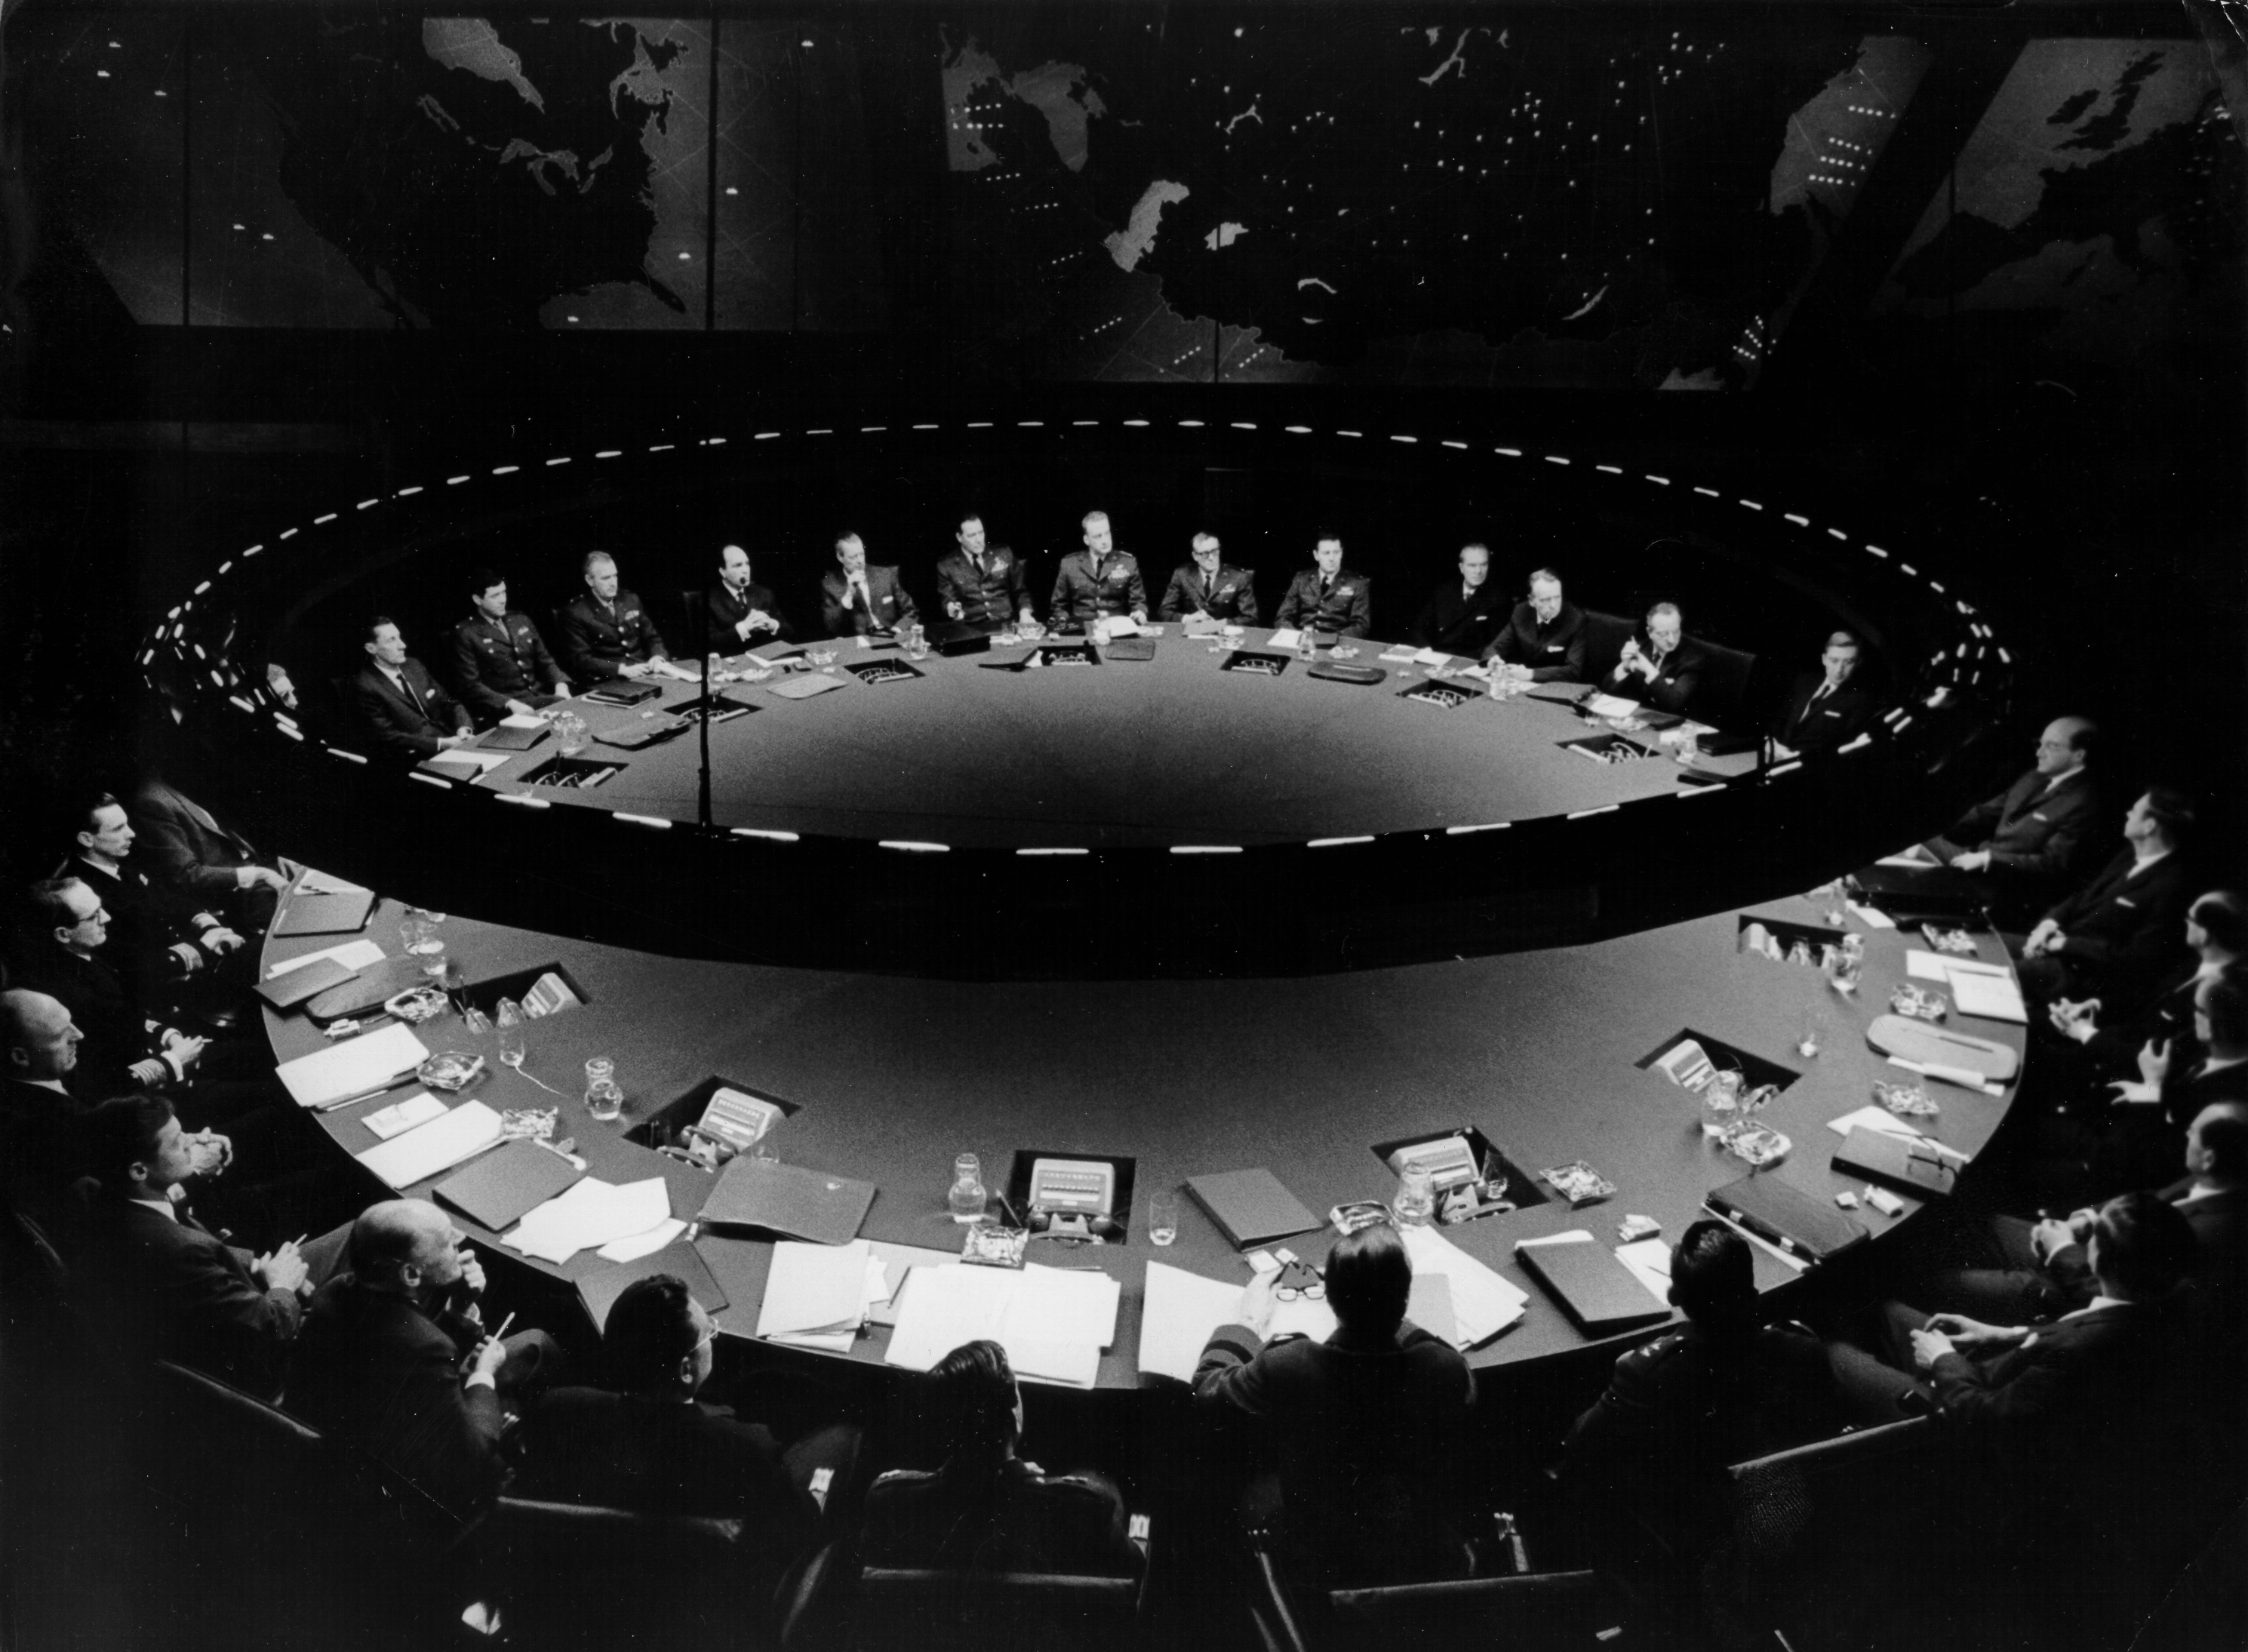 Dr. Strangelove or: How I Learned to Stop Worrying and Love the Bomb, directed by Stanley Kubrick (1963-64; GB/United States). The Conference table in the War Room. © Sony/Columbia Pictures Industries Inc